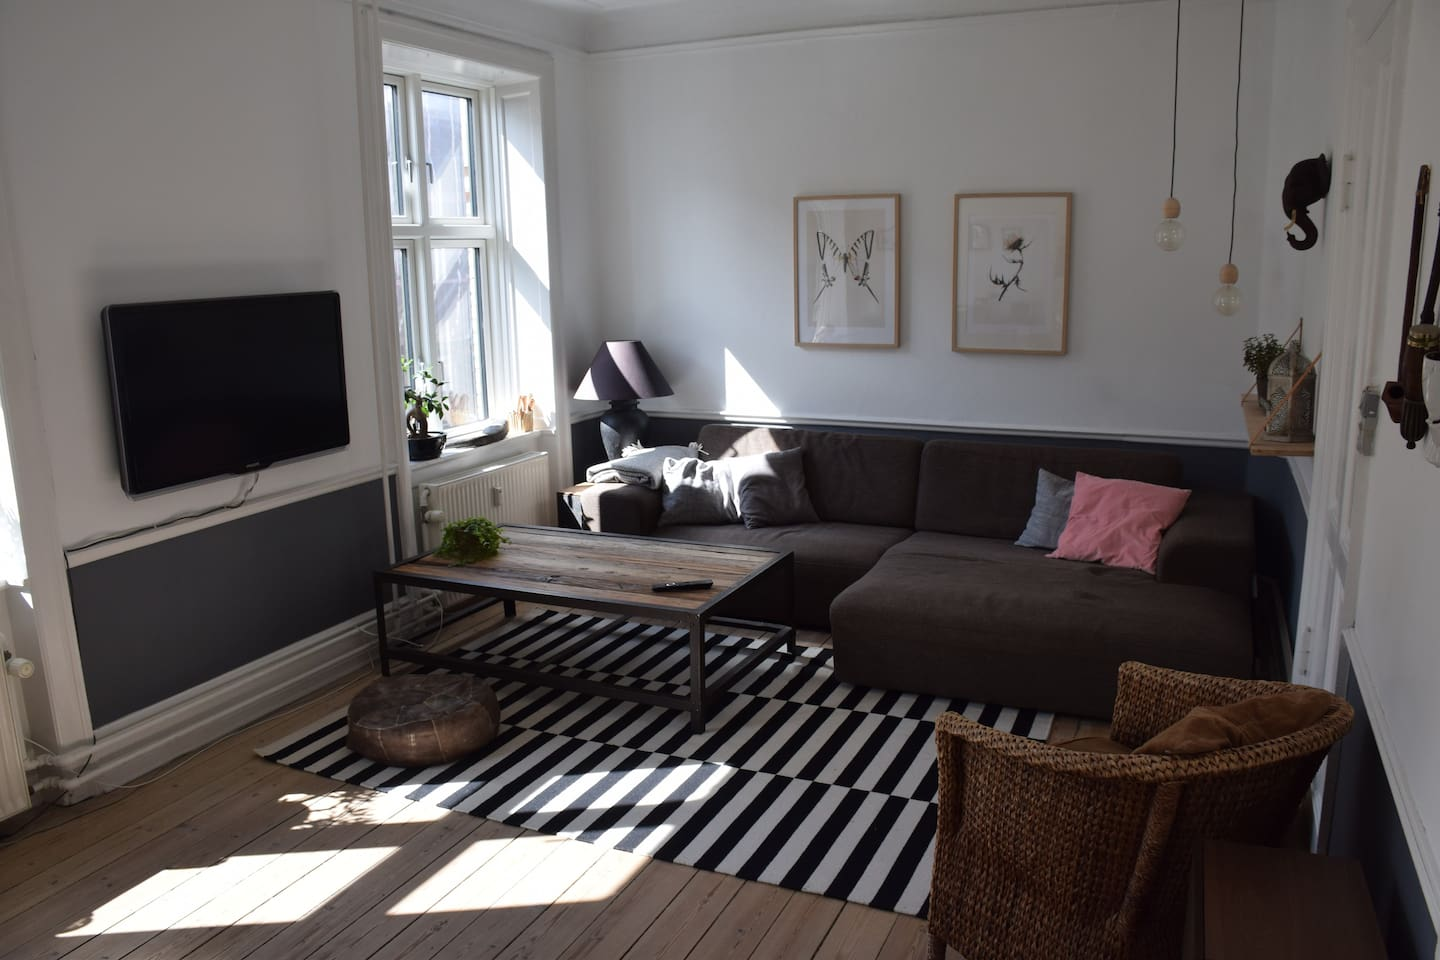 Large sofa with room for a fifth person